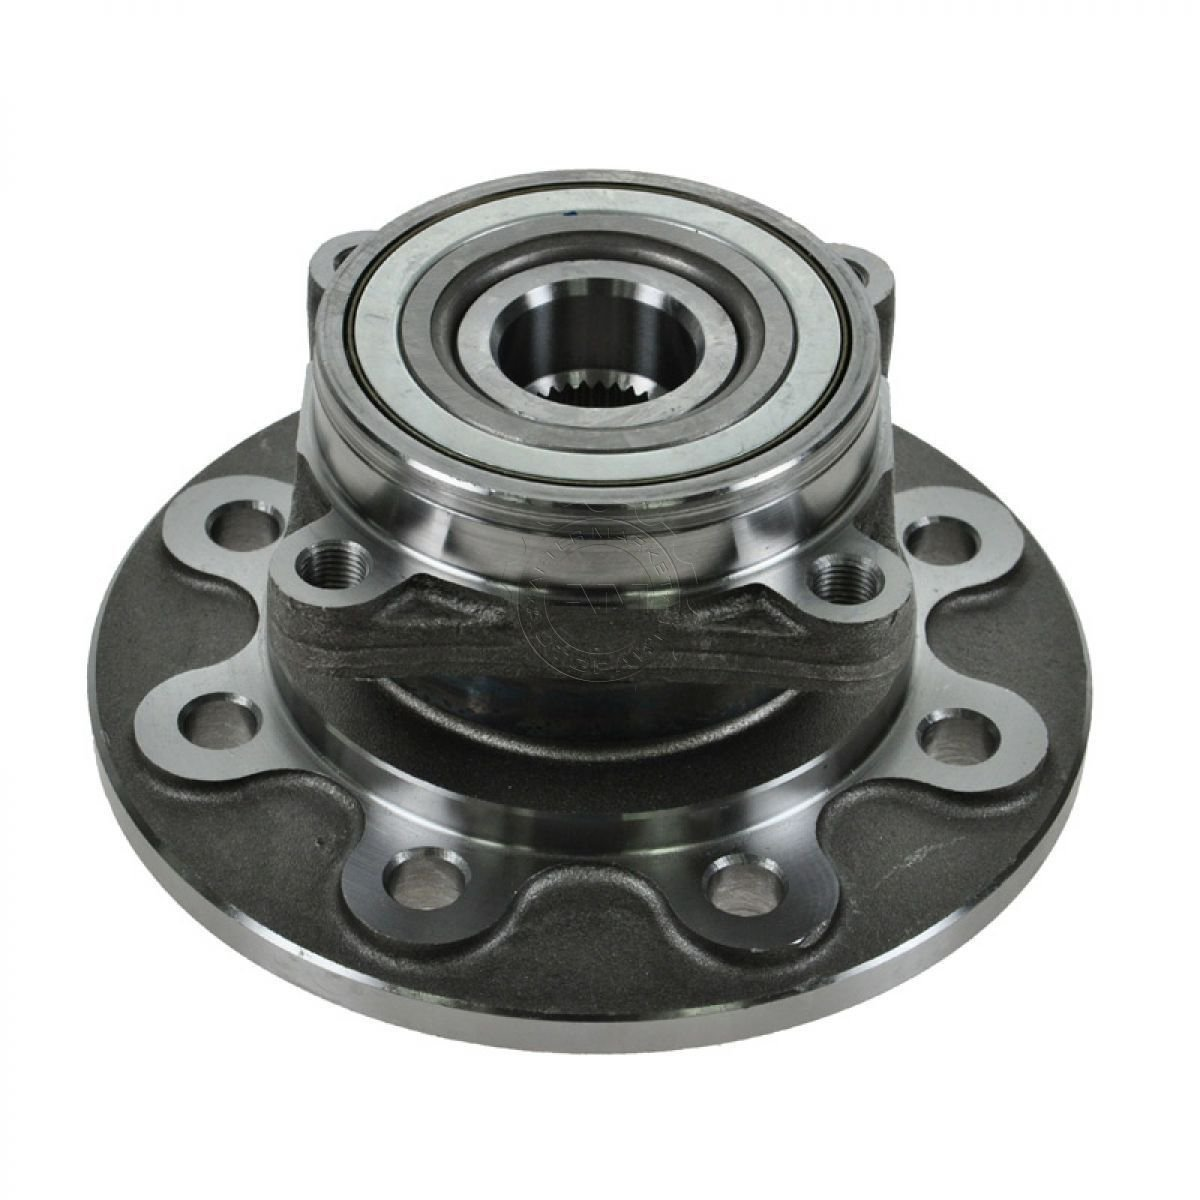 New Front Wheel Hub & Bearing Left LH or Right RH for 94-99 Dodge Ram 2500 4WD